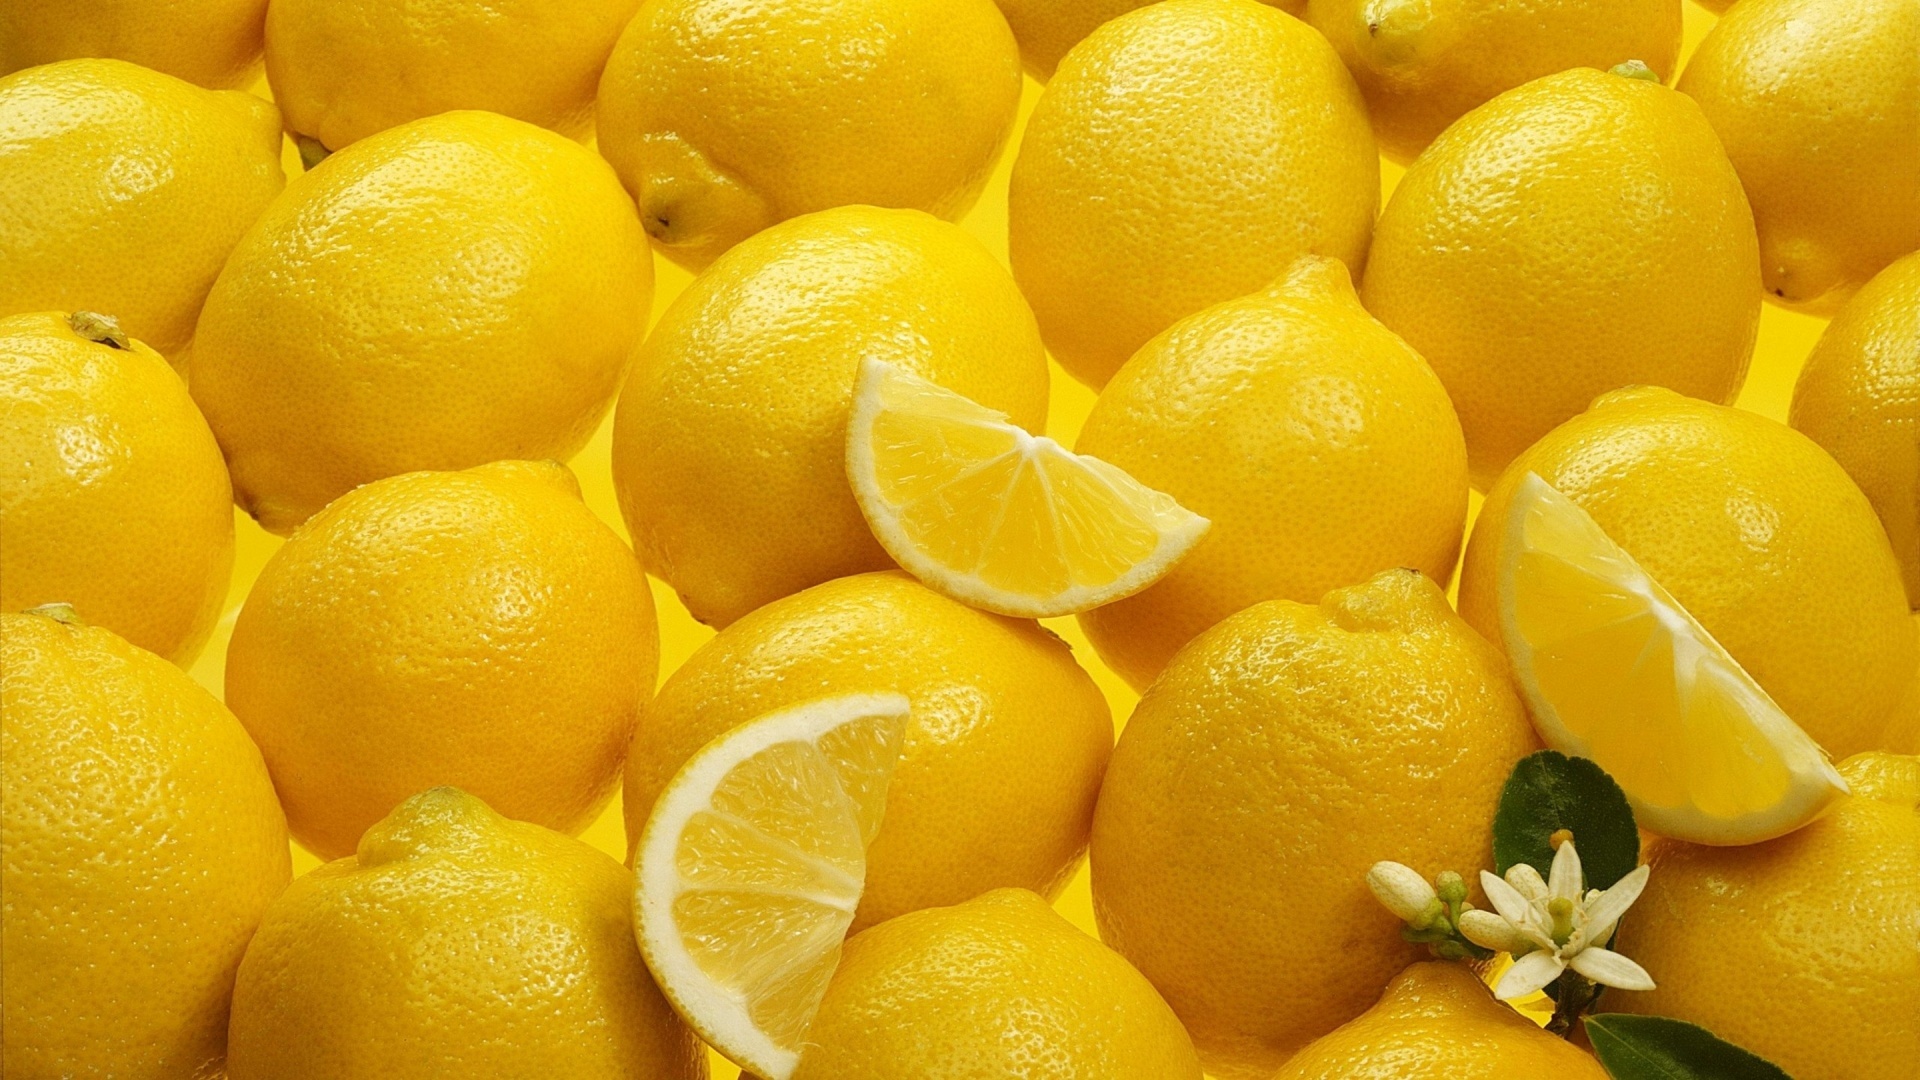 However the diversity of applications for lemons far exceeds general knowledge and once you read the following list, you'll likely want to stock at least a ...